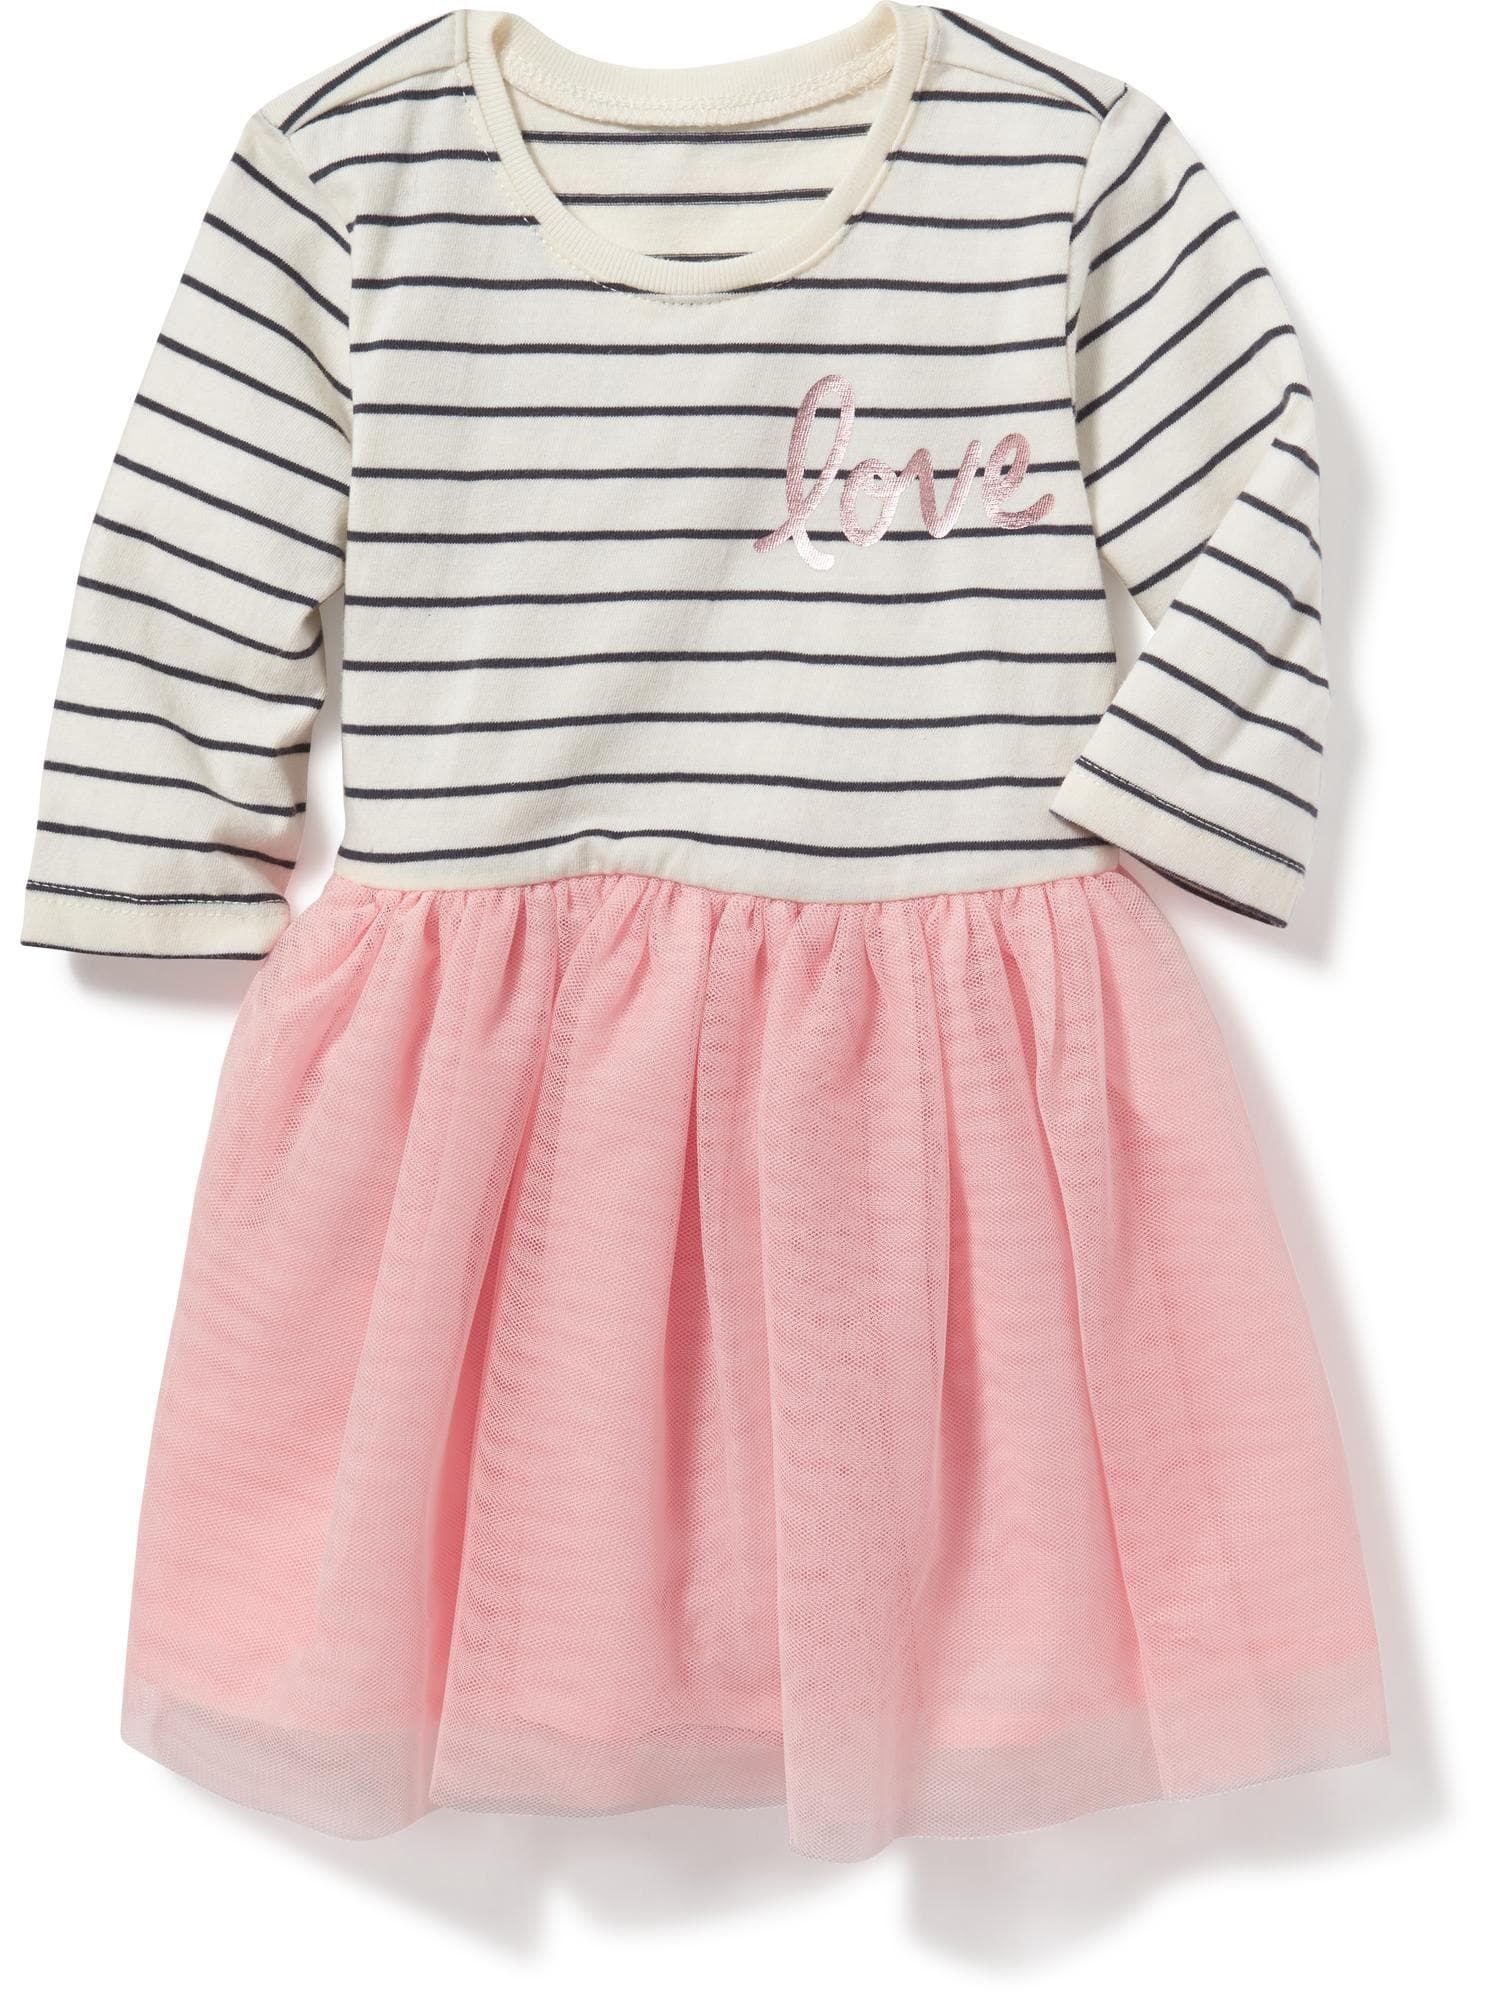 Graphic Tutu Dress for Baby Old Navy Little Princess